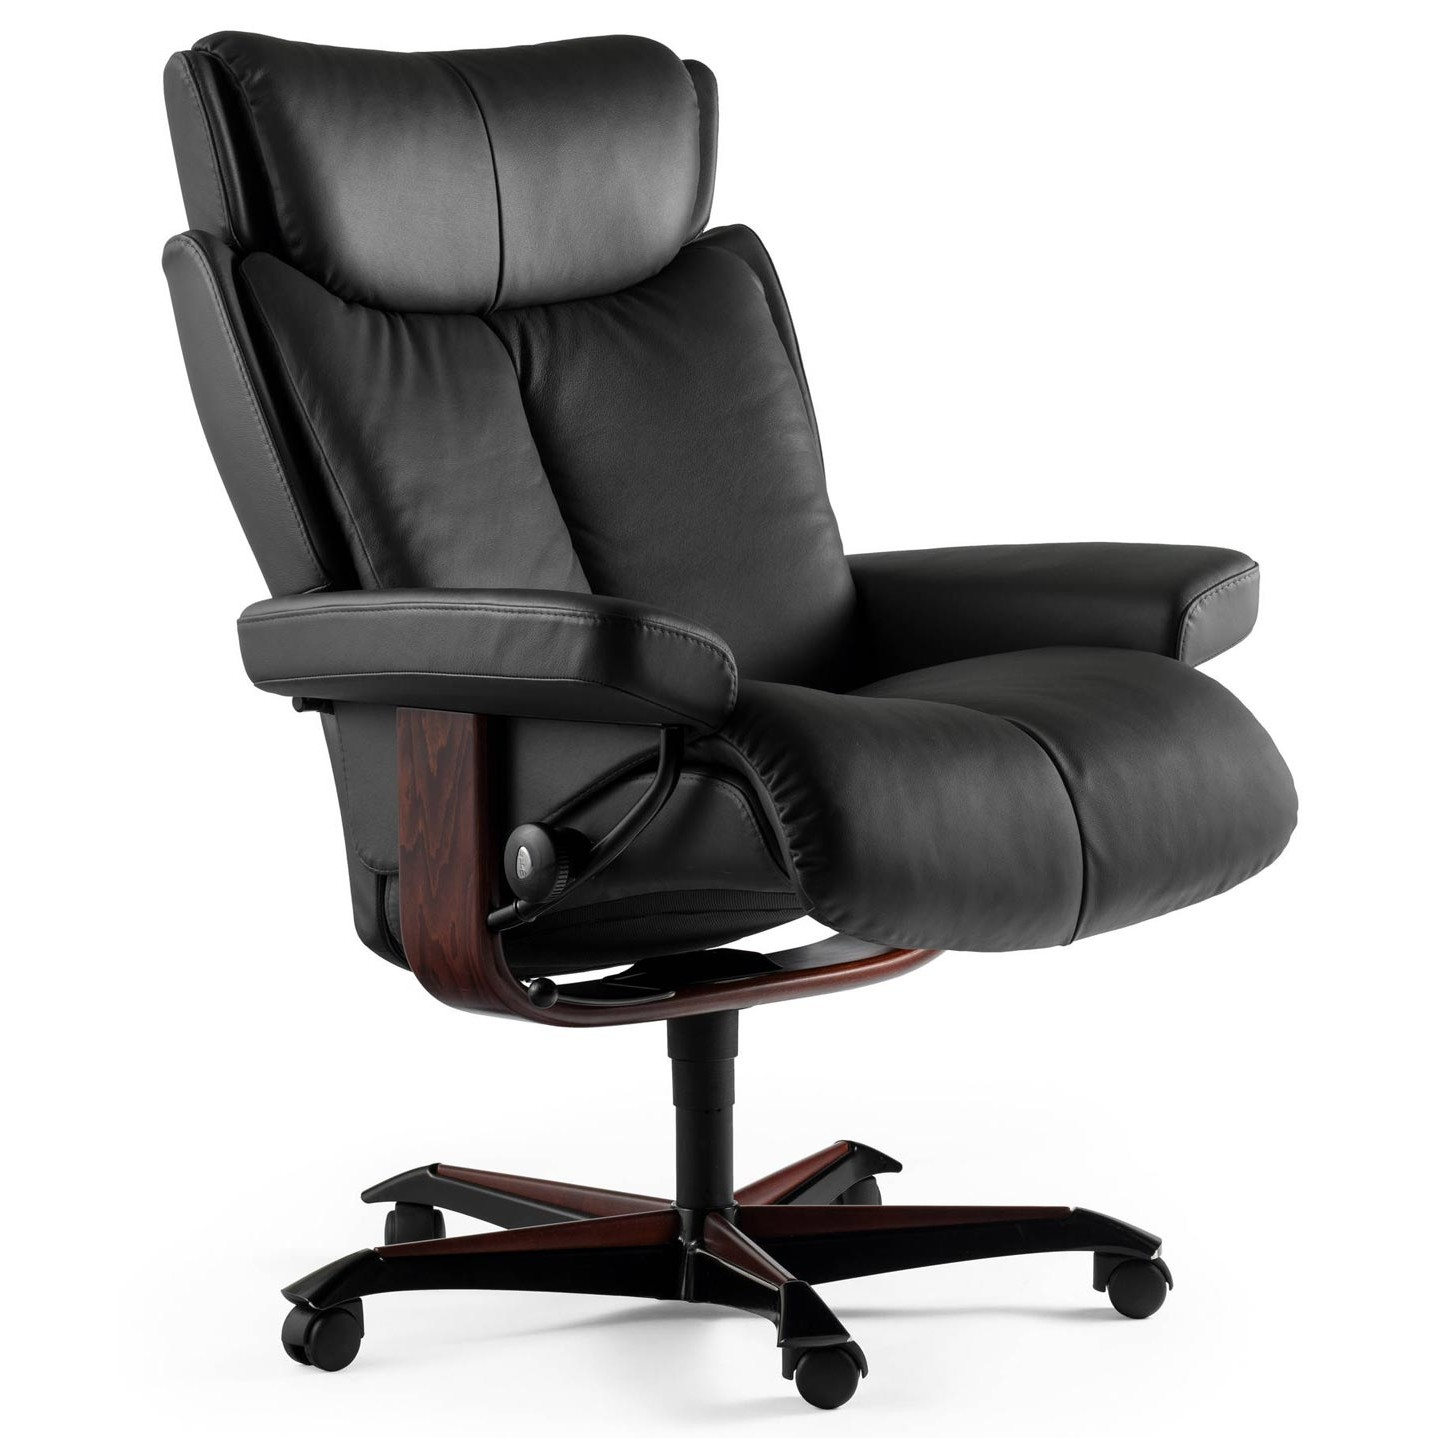 stressless magic office chair from 3 by stressless